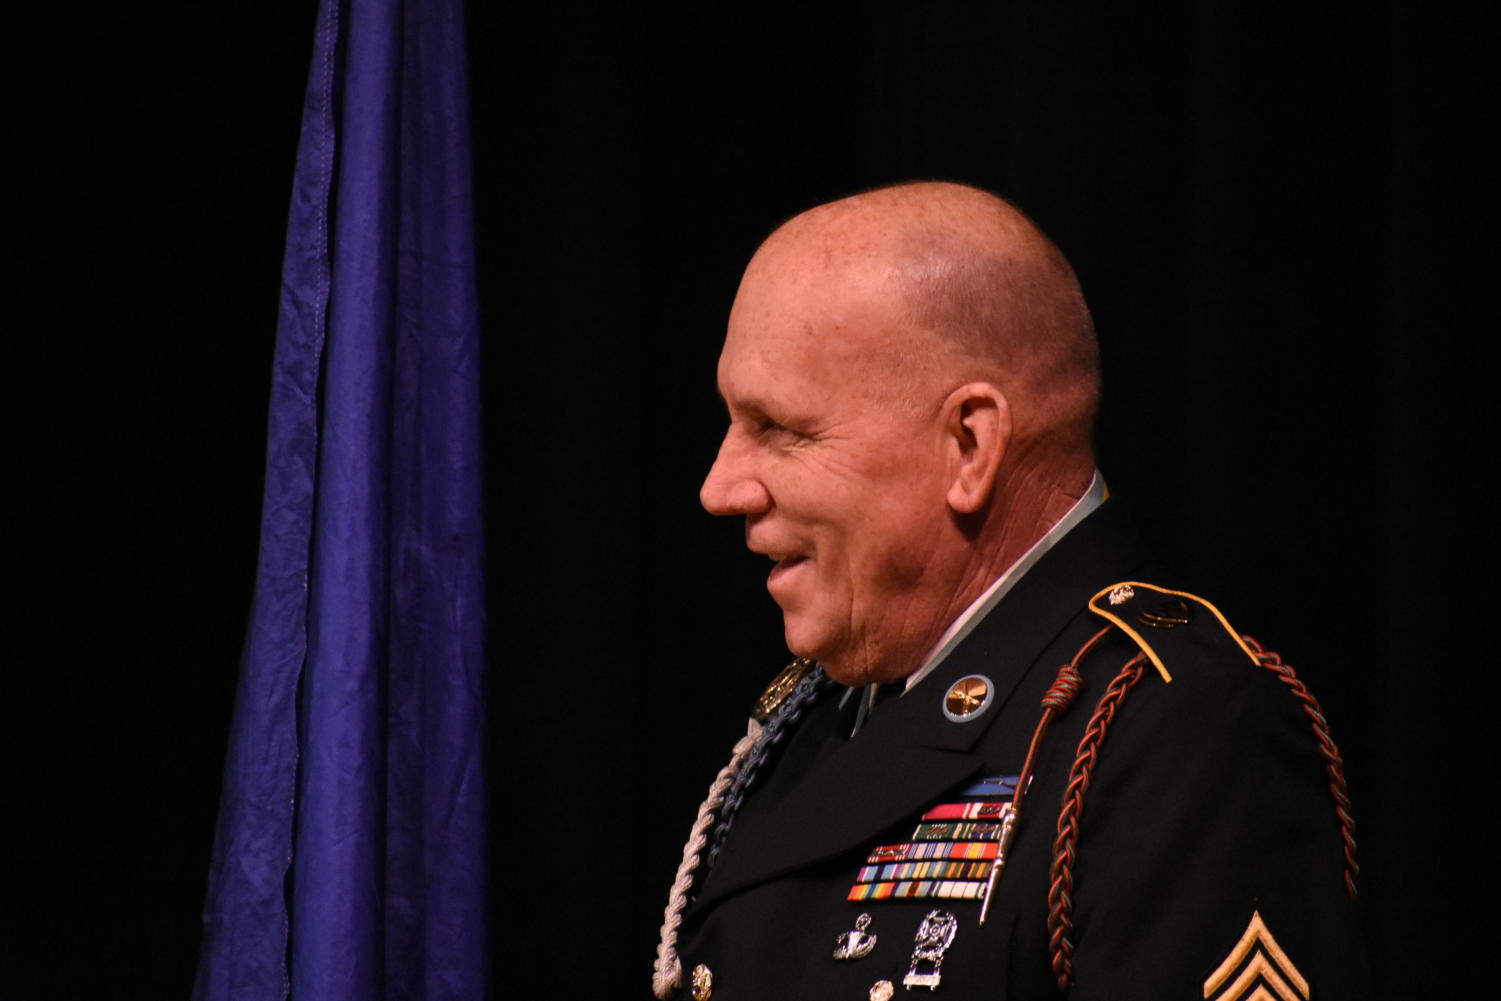 Sergeant+Major+Russel+Wilder+smiles+as+he+watches+students+receive+awards.+